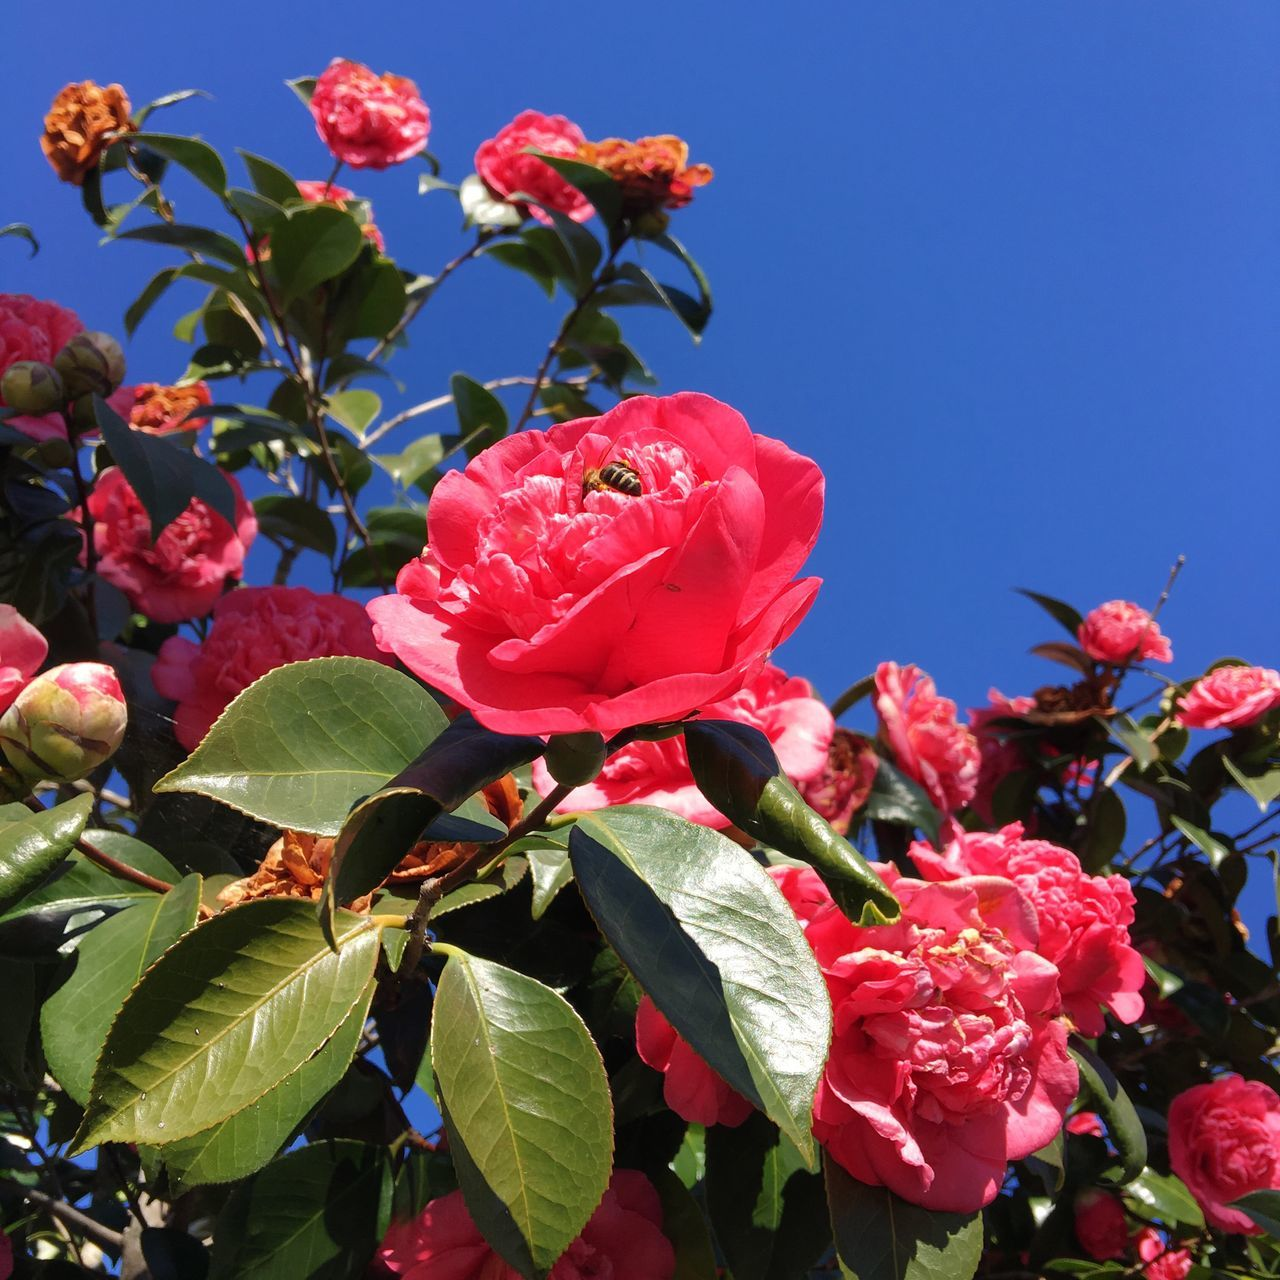 Flower Fragility Petal Growth Nature Beauty In Nature Pink Color Freshness Plant Close-up No People Flower Head Leaf Blooming Day Outdoors Sky Blue Sky Camellia Lookingup SPAIN Galicia Leaves Bee